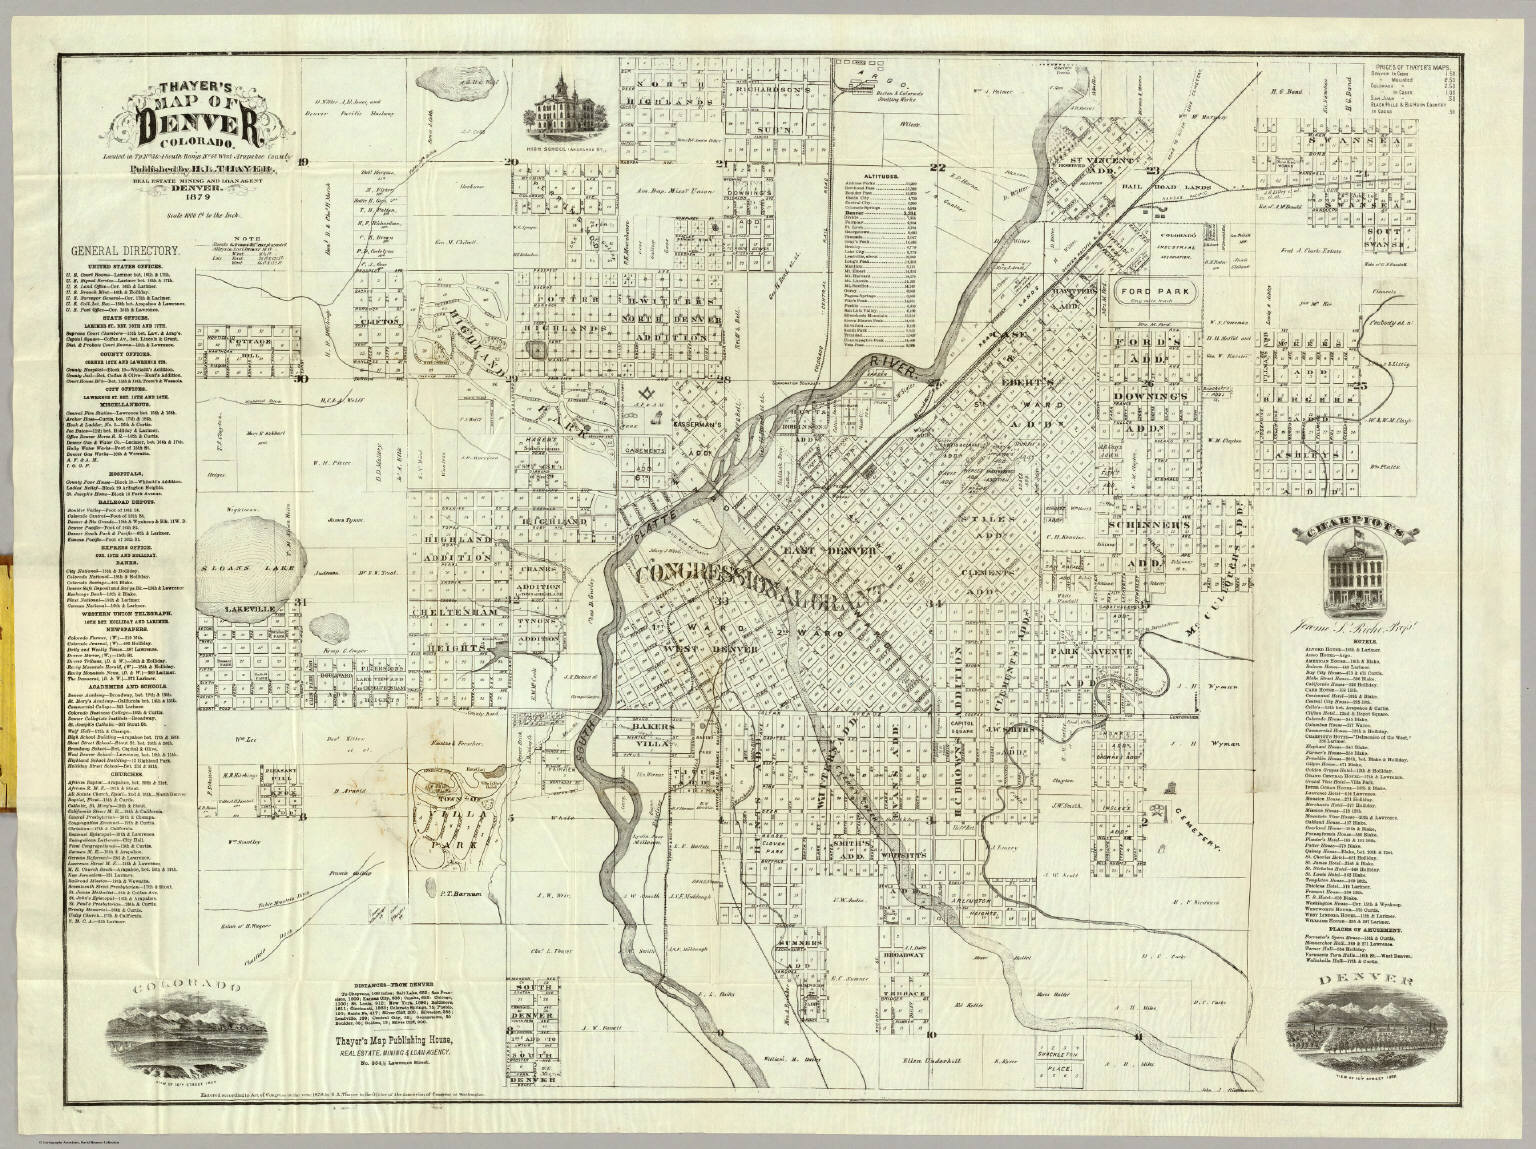 Thayer\'s Map of Denver Colorado. / Thayer, H.L. / 1879